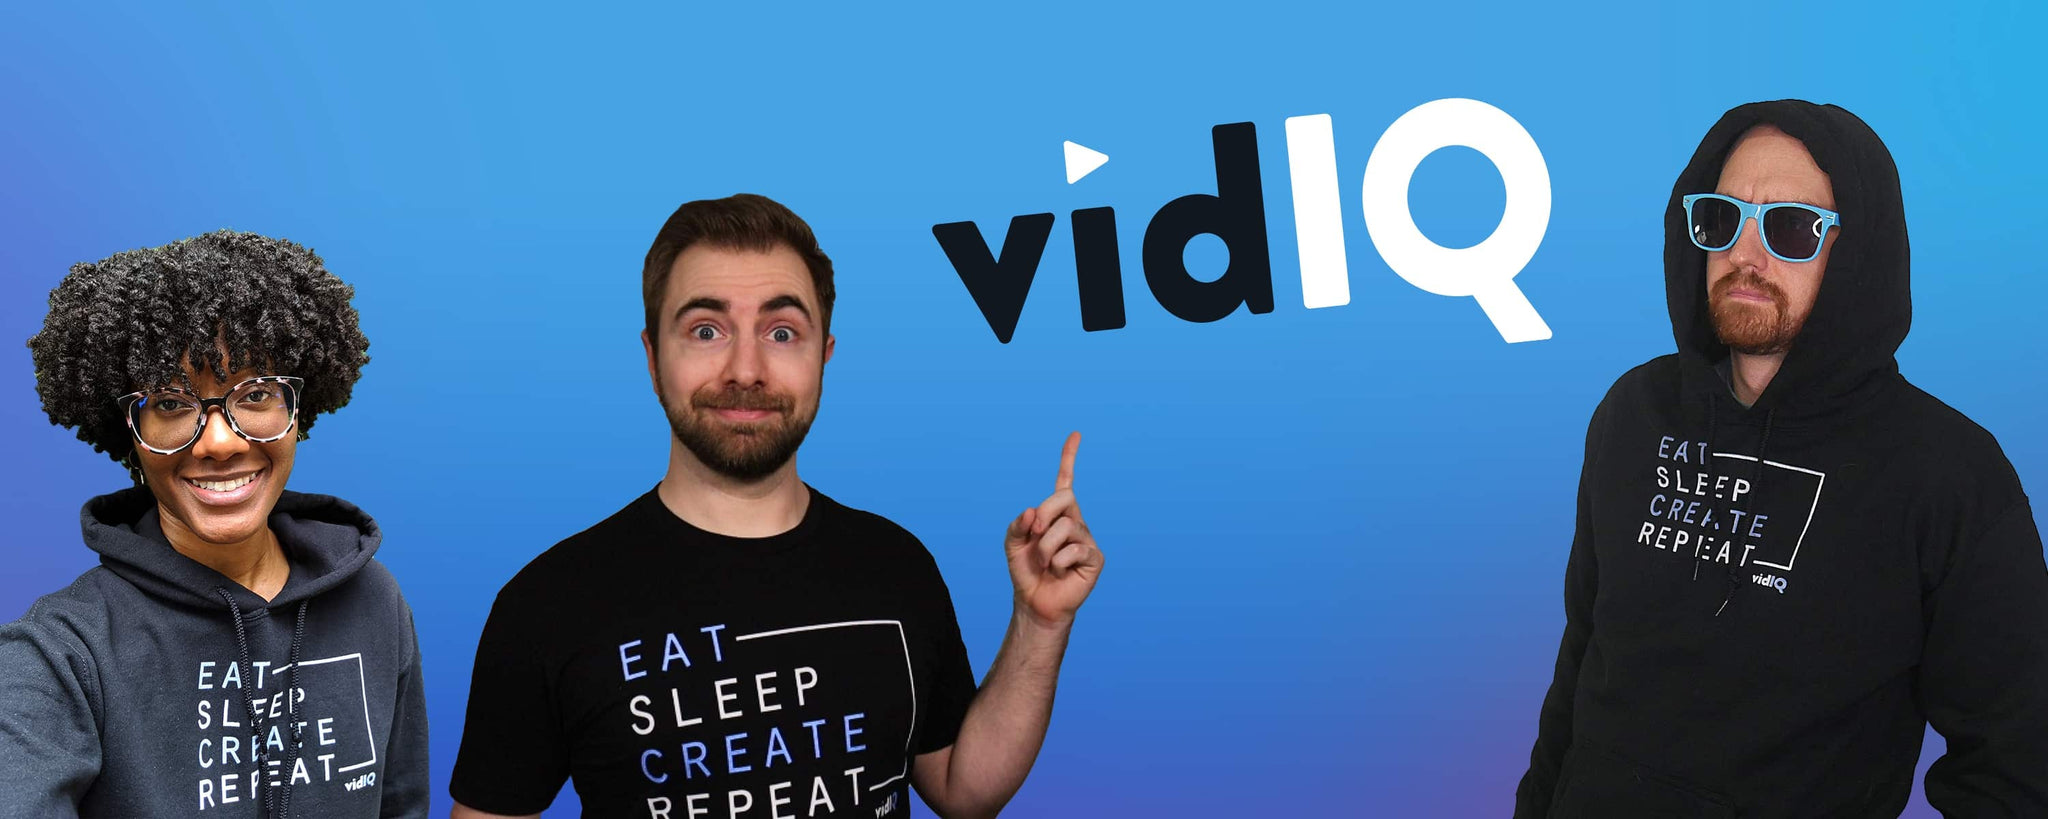 The official merch store for vidIQ!